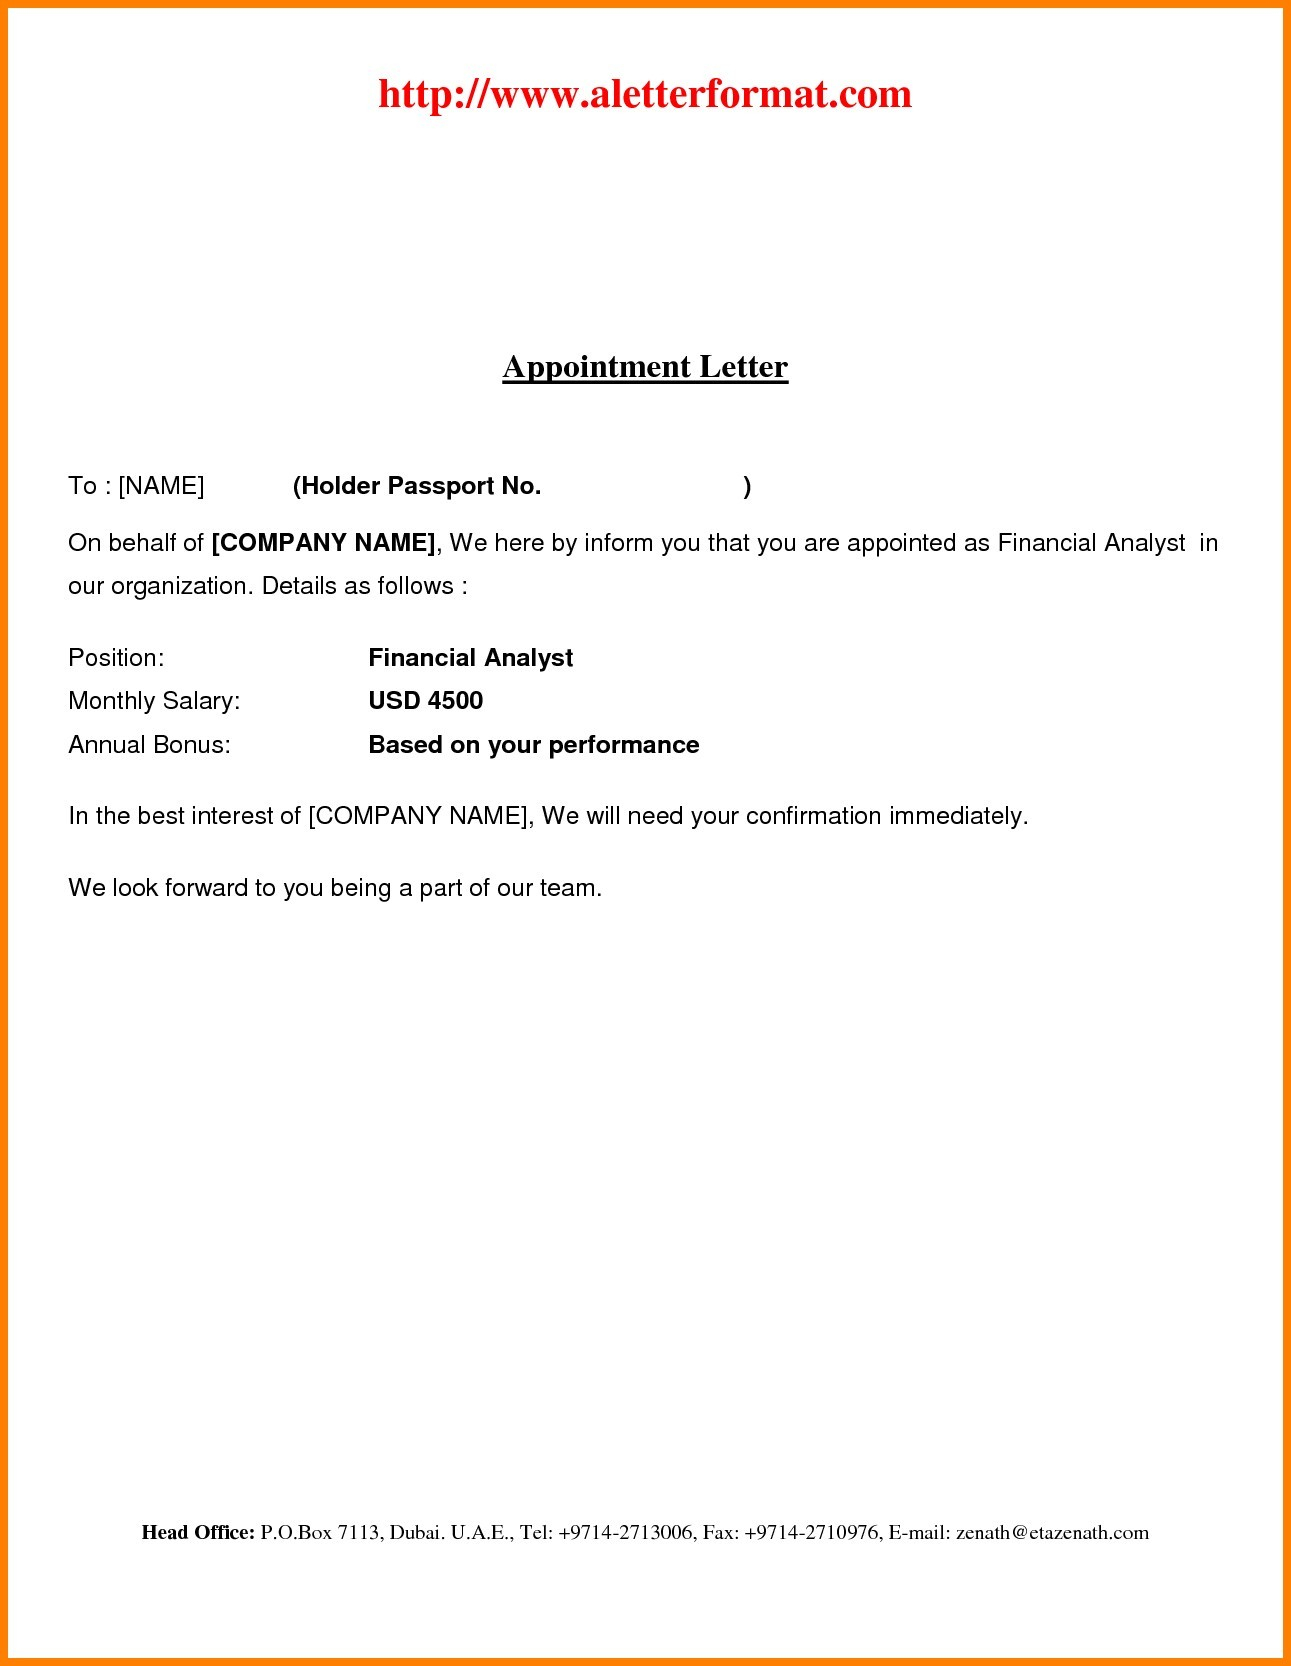 Conditional Offer Of Employment Letter Template - Offer Letter format In Dubai Acurnamedia